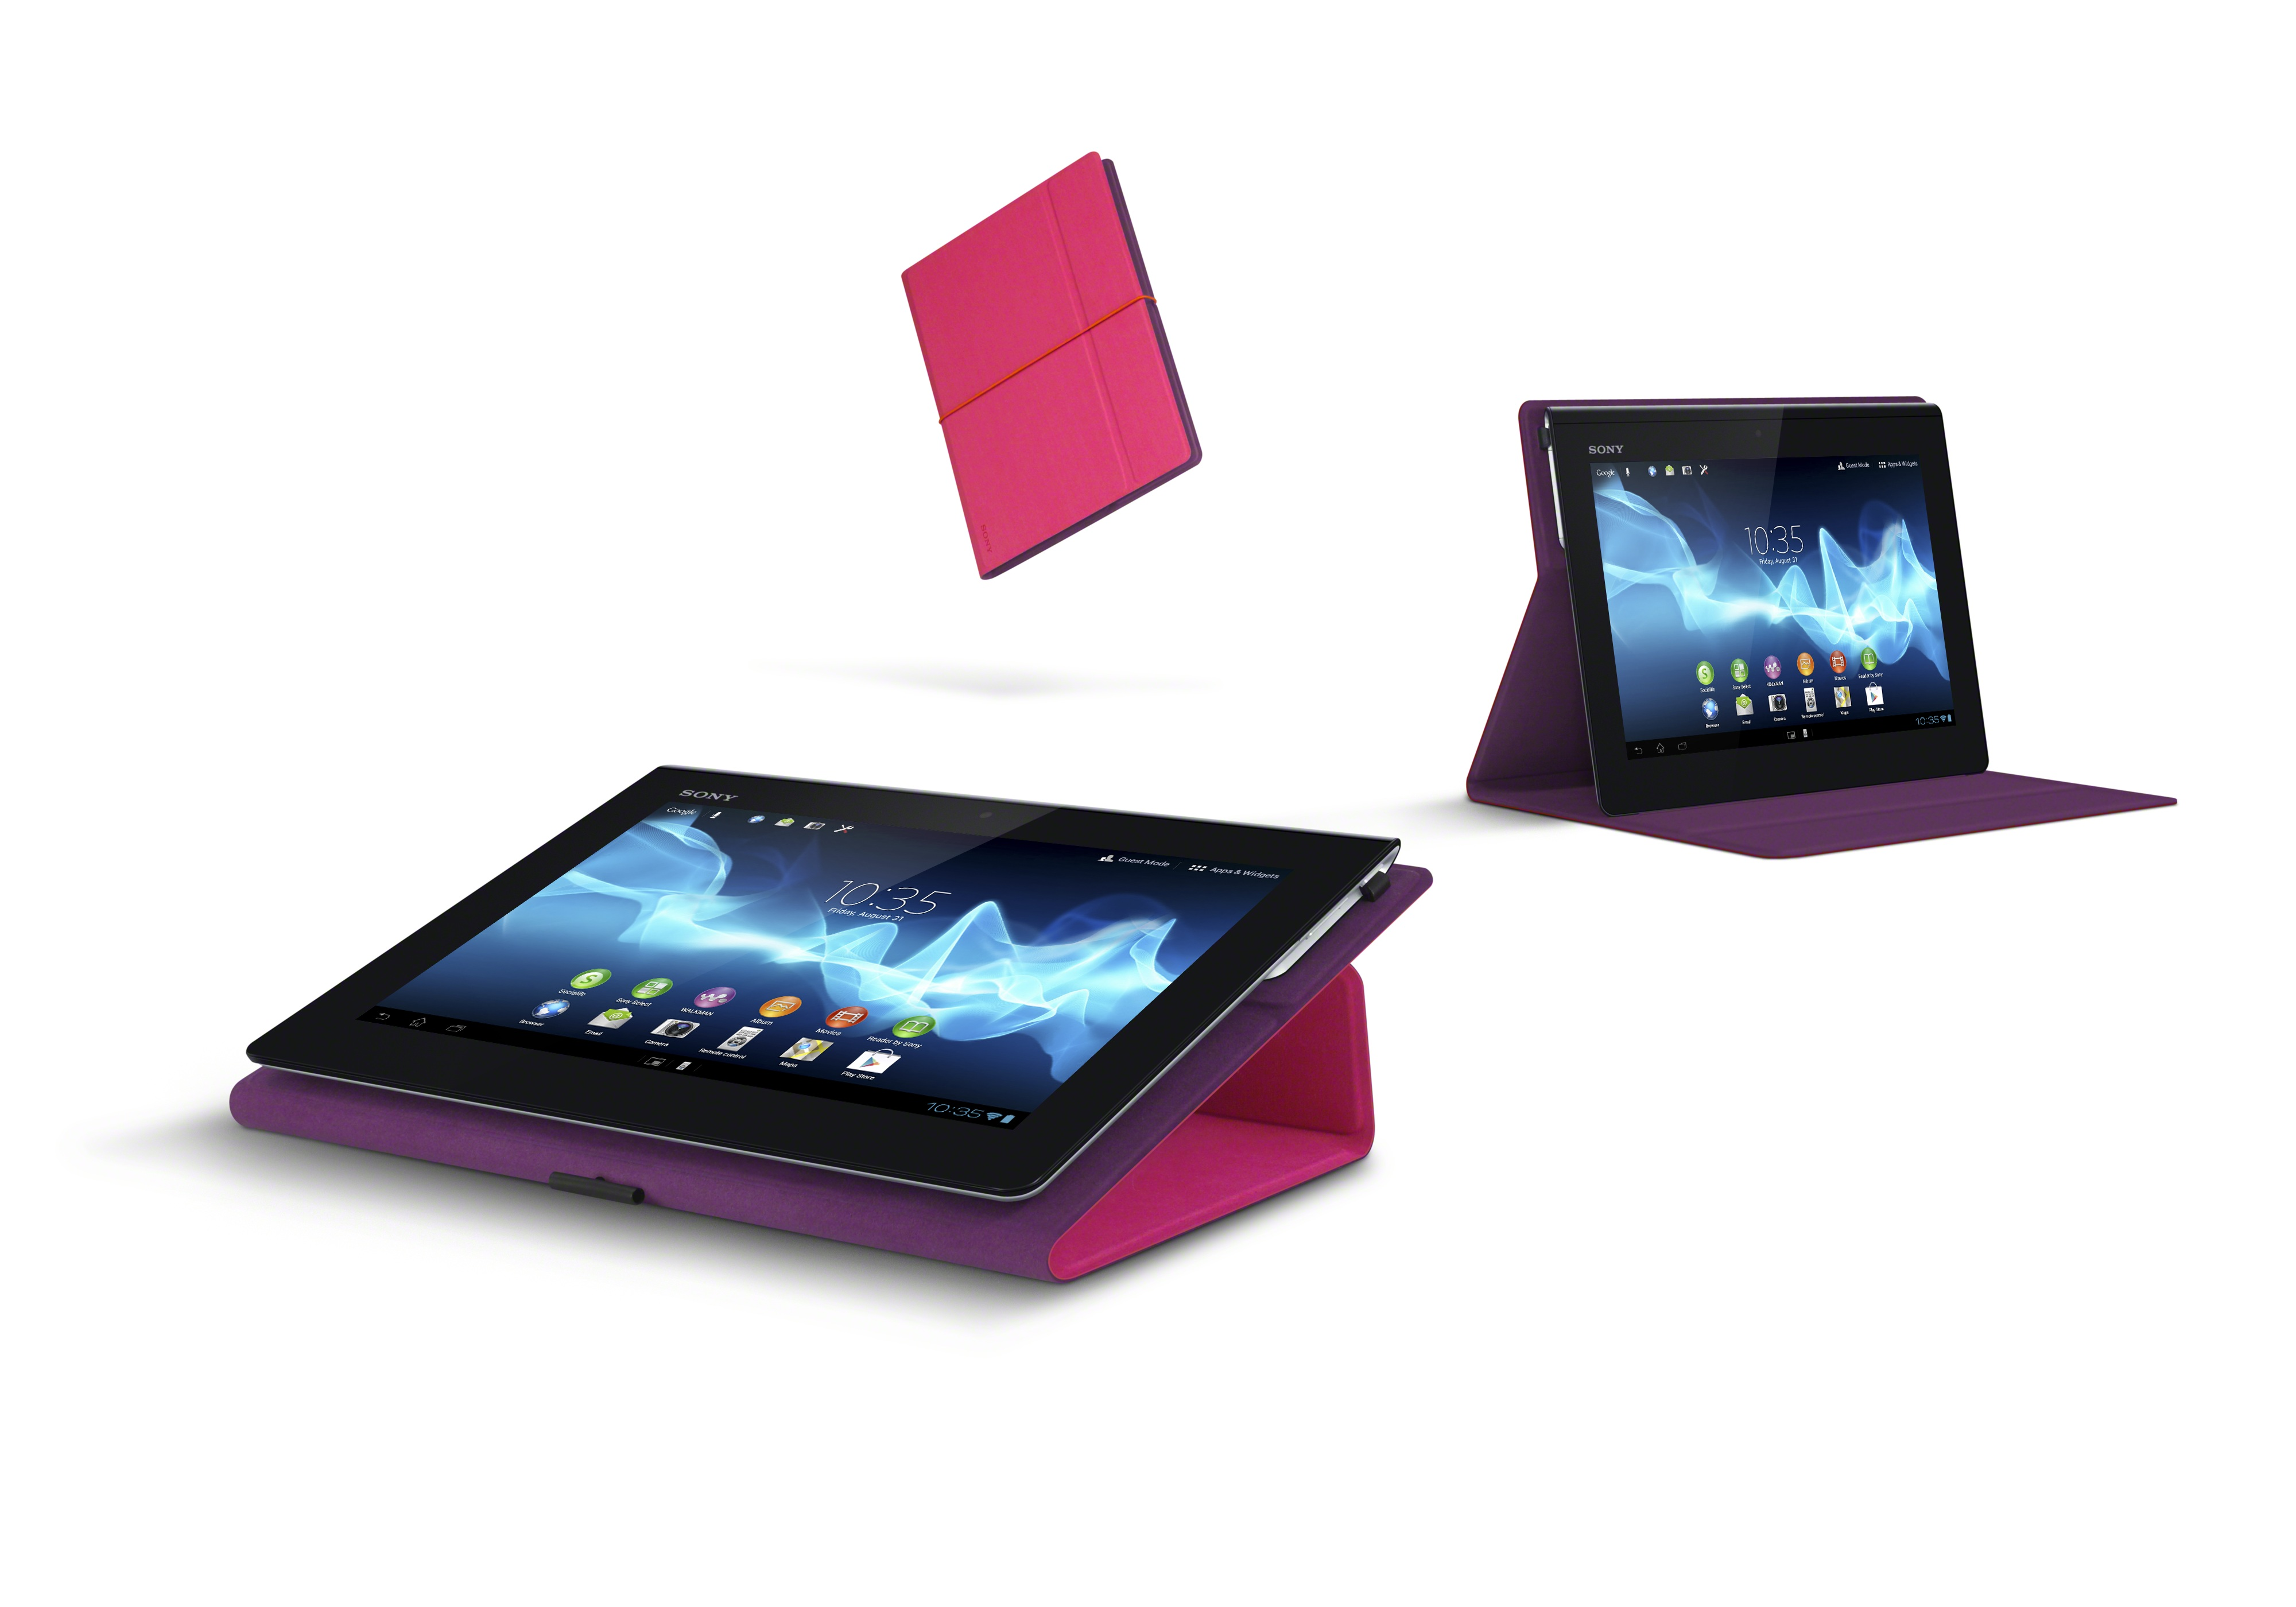 sony xperia tablet s 9 4 quad core android 4 0 tablet eurodroid. Black Bedroom Furniture Sets. Home Design Ideas